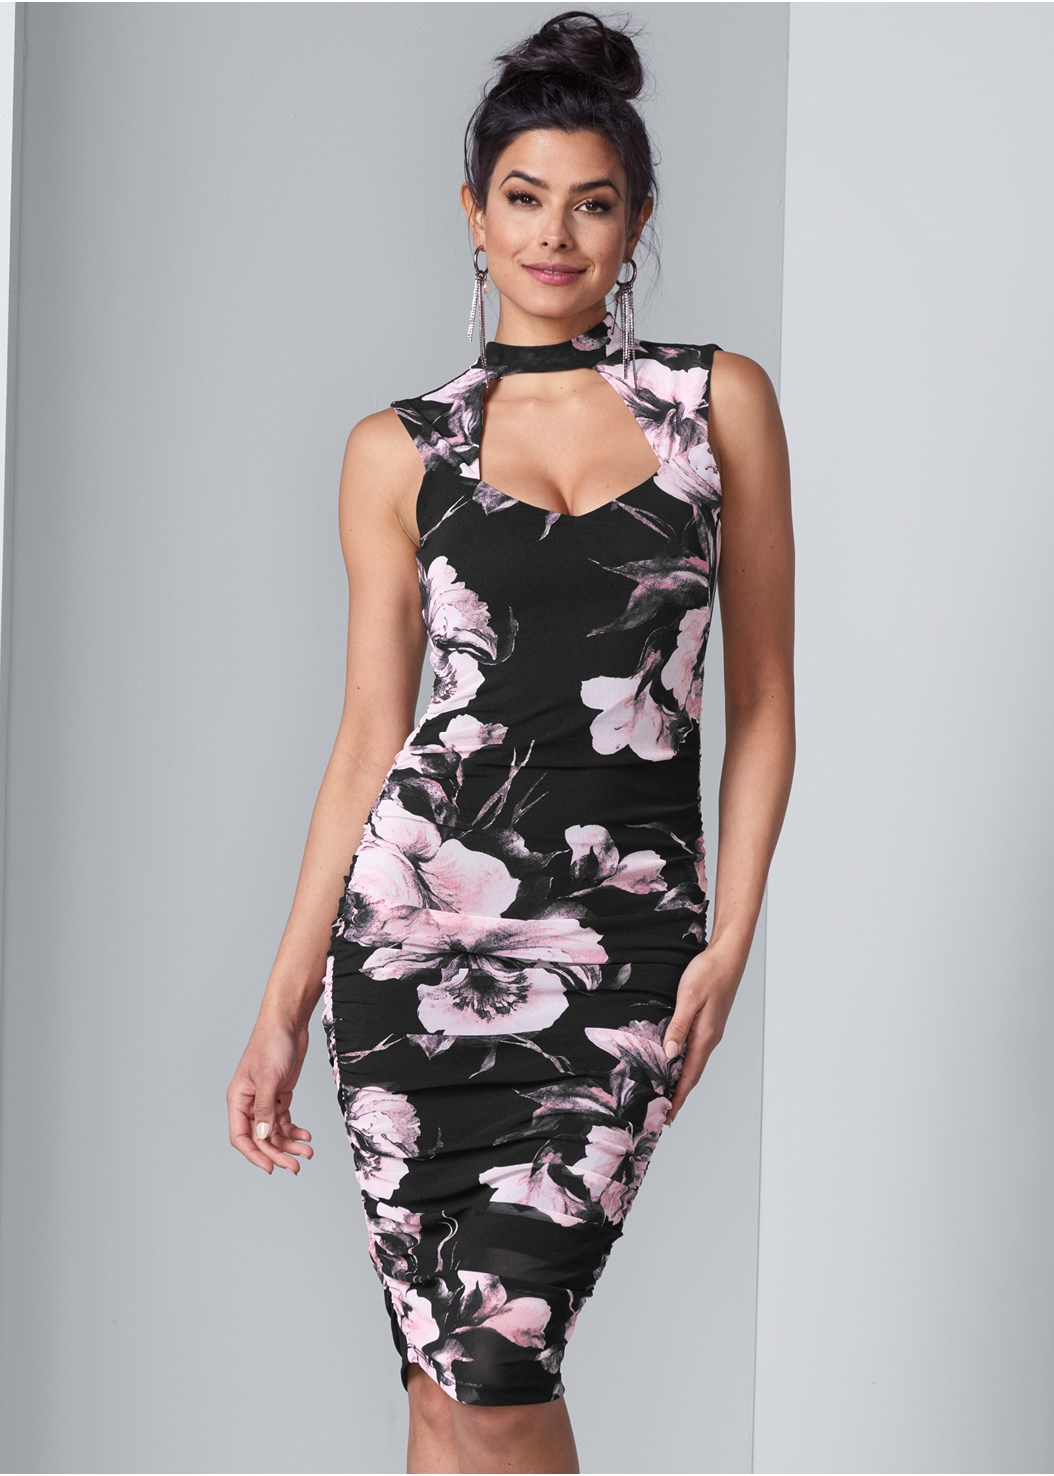 Floral Bodycon Ruched Dress,Confidence Full Body Shaper,Faux Suede Pointy Booties,Rhinestone Fringe Earrings